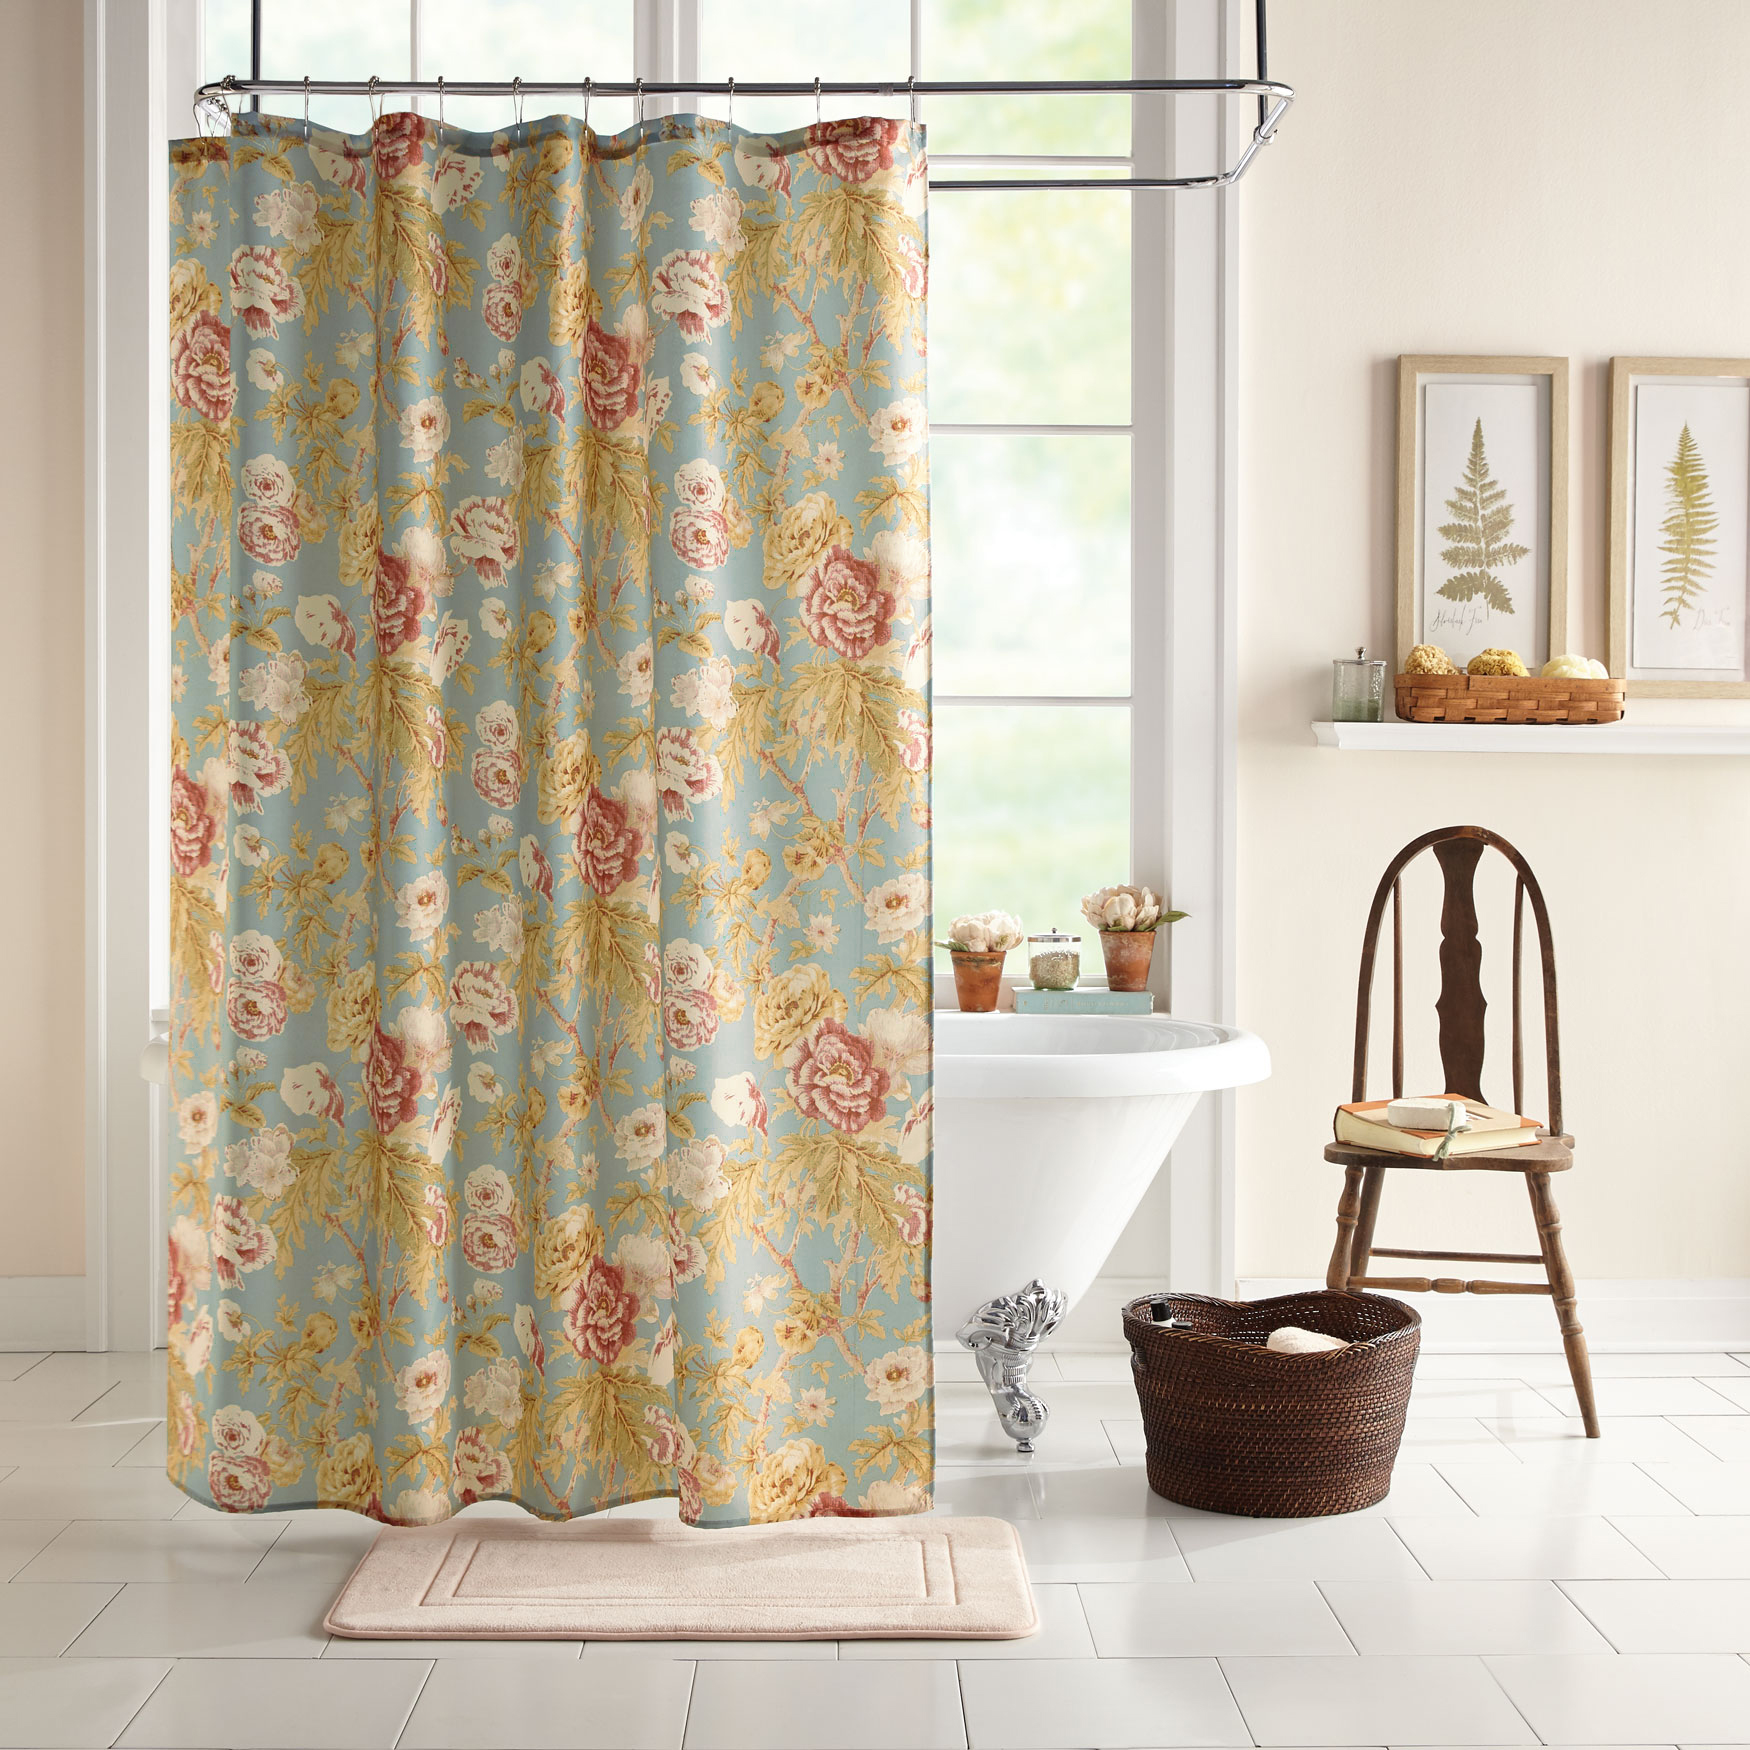 15-Pc. Victoria Shower Curtain Set, MULTI